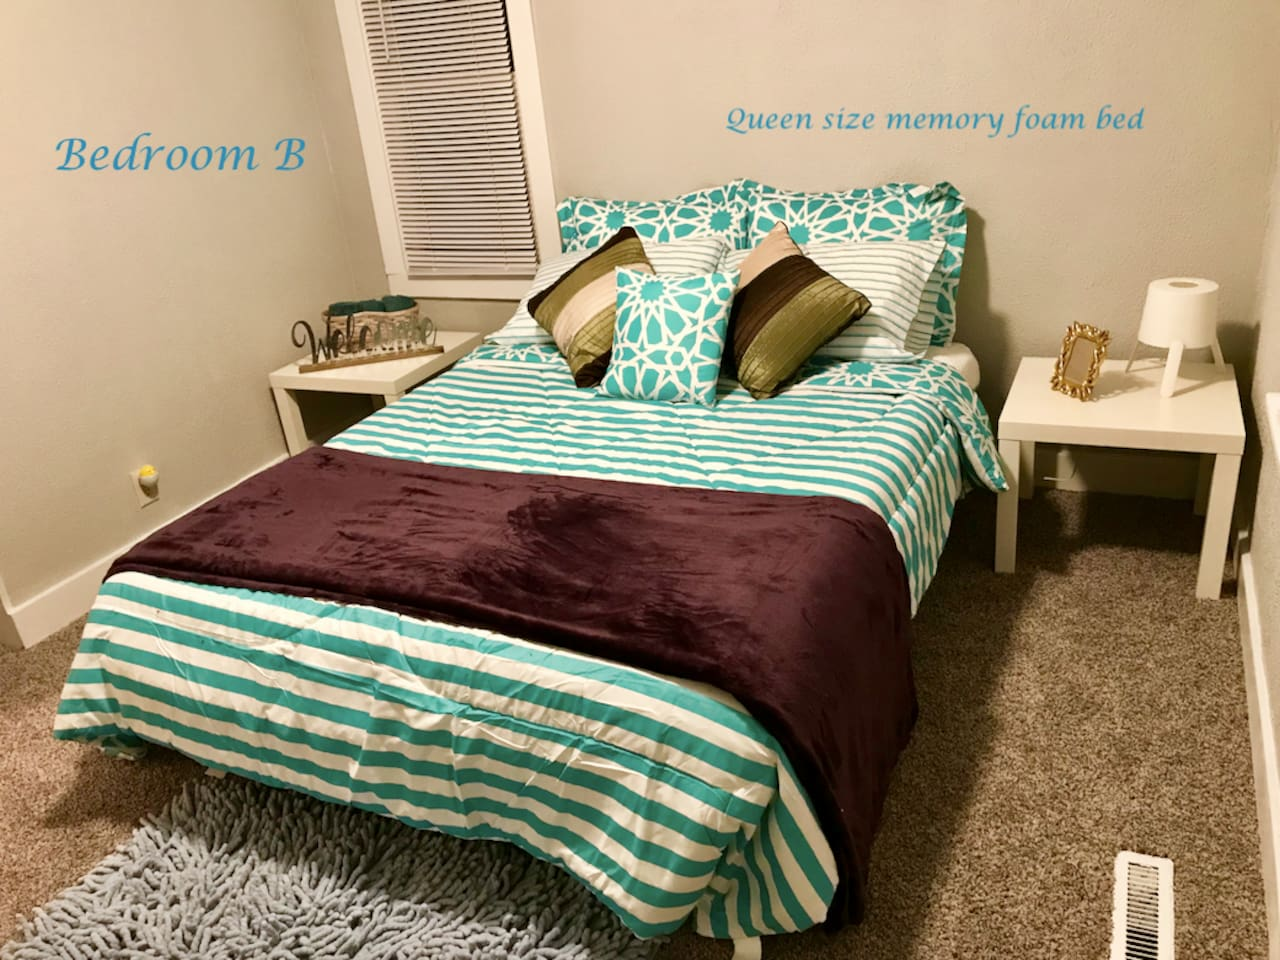 we choose for you, our special guest, high-quality mattress, pillows and bedding.   The beds are Queen's size, green choice Denver's mattress, a great soft pillow 100 natural of certified organic, allergen free 100% natural and Luxurious